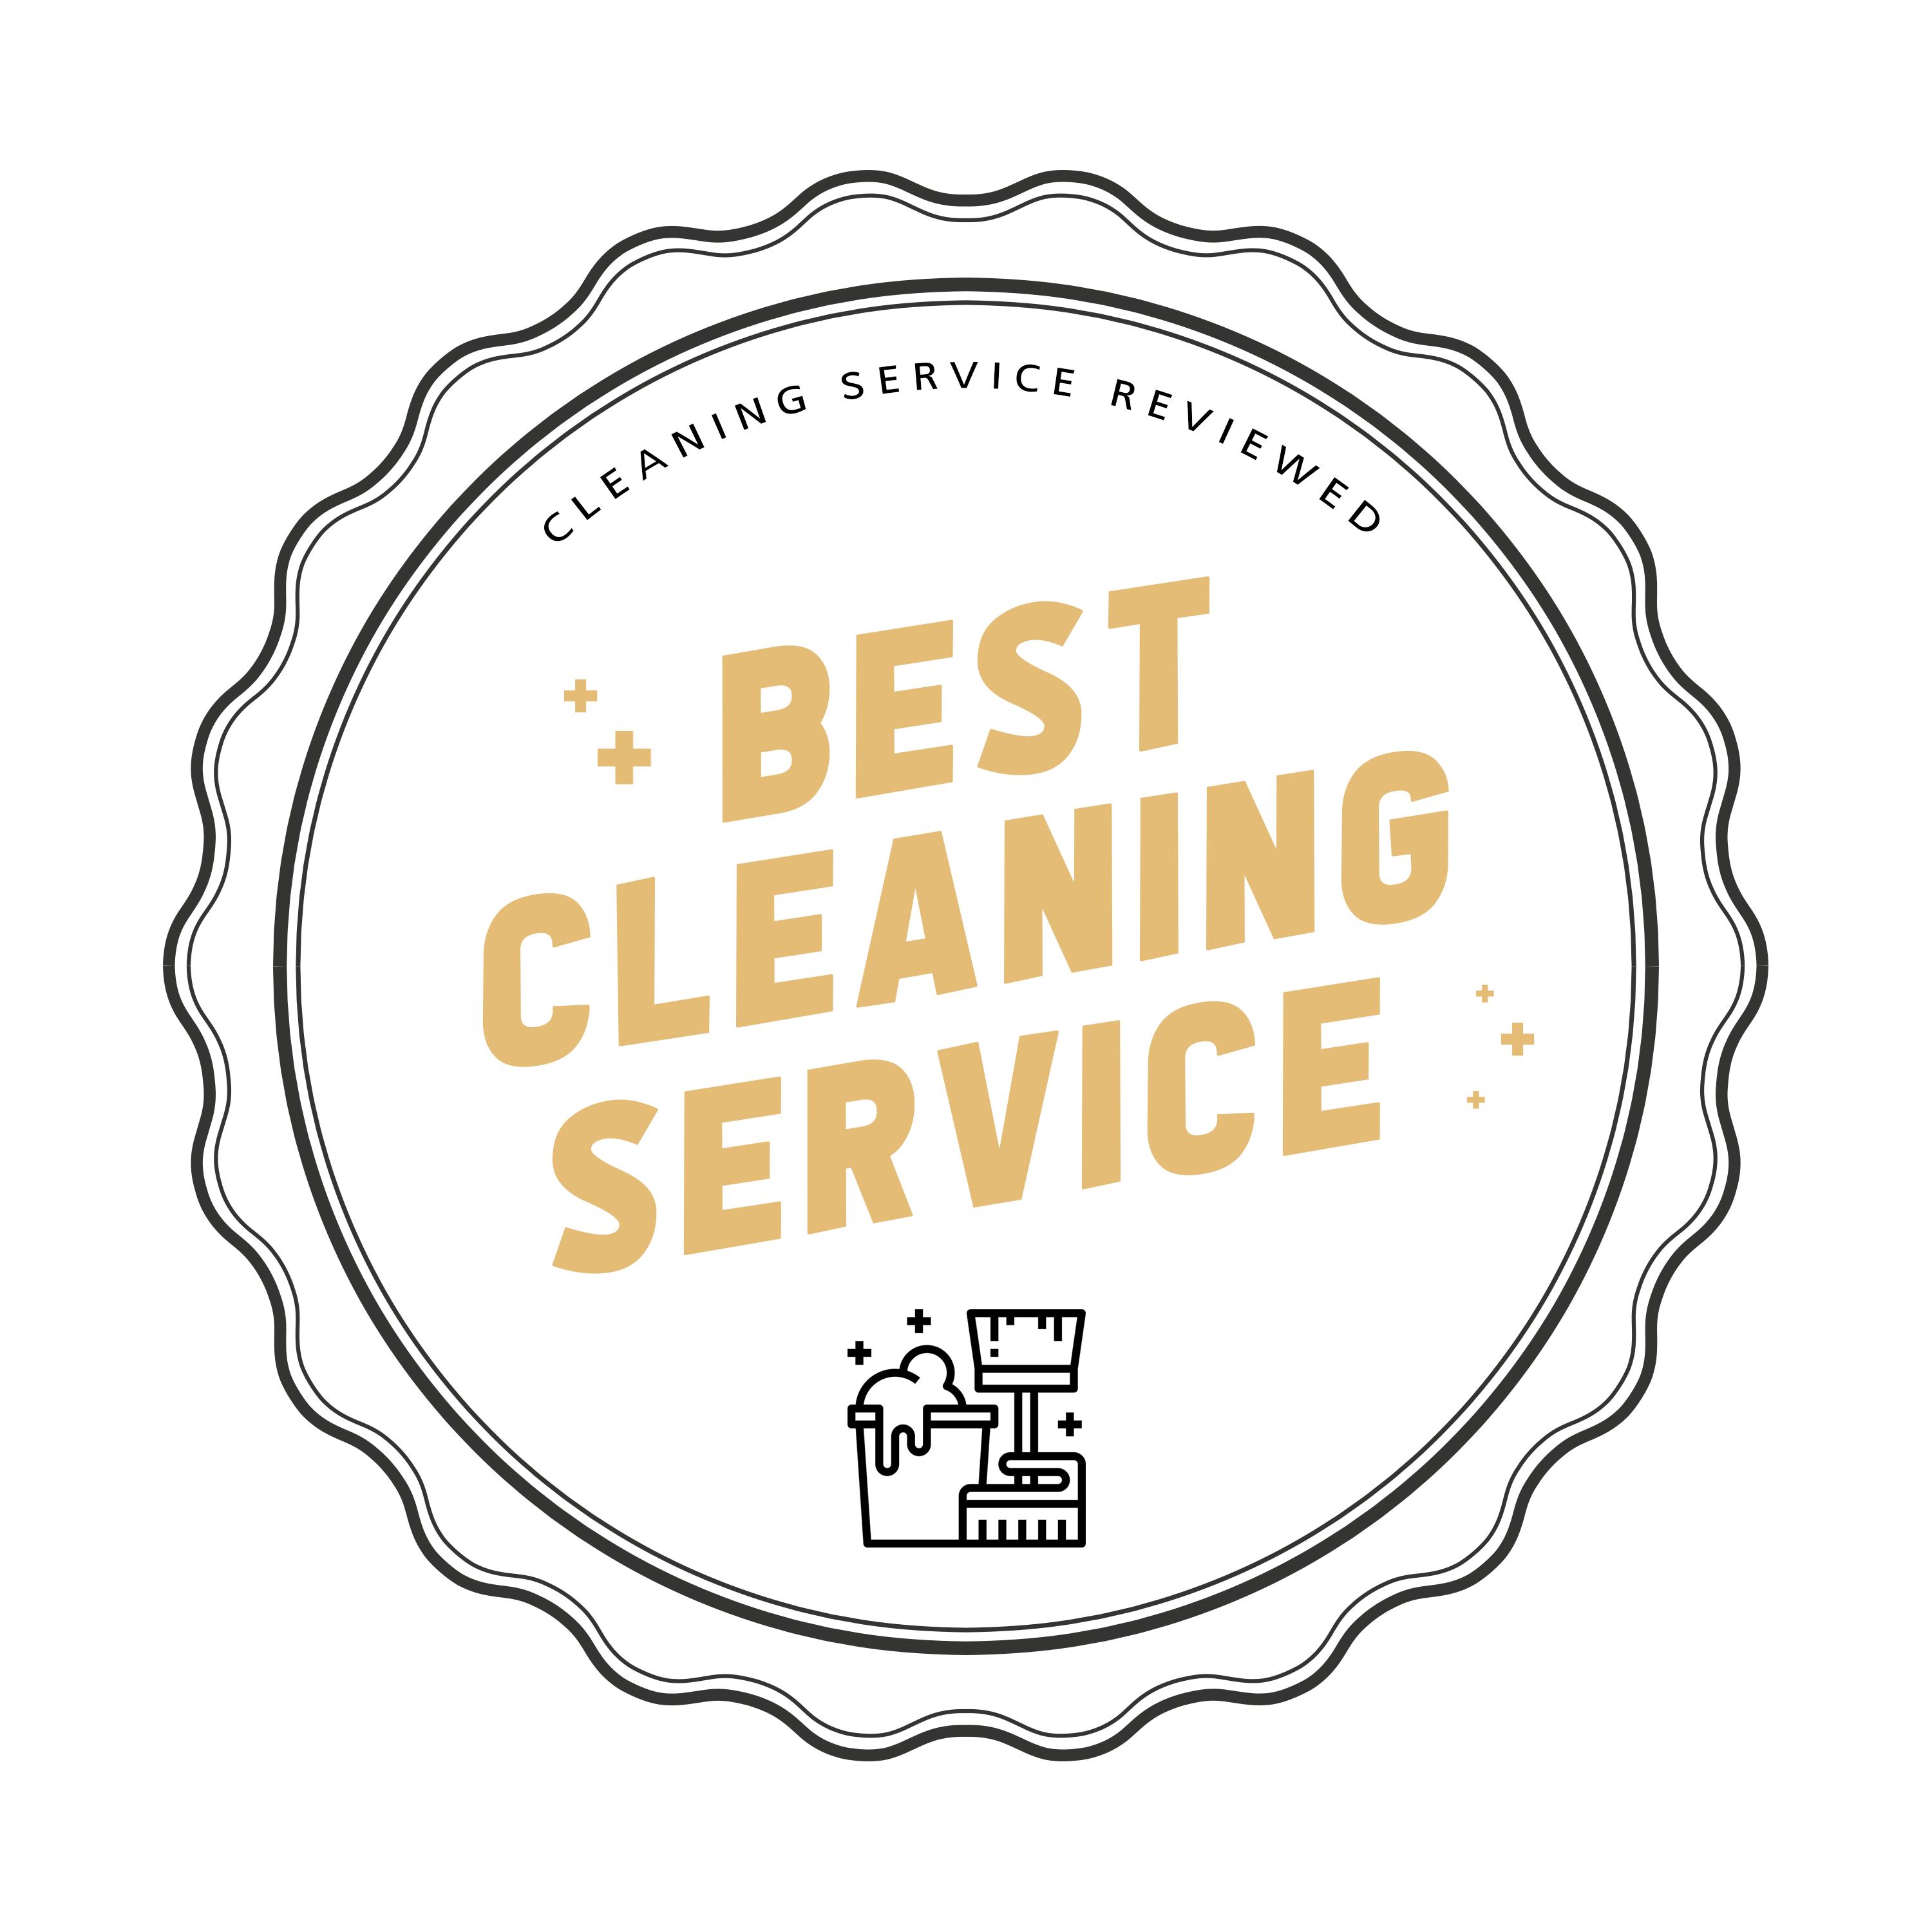 CleanDay London is in cleaningservicereviewed.com